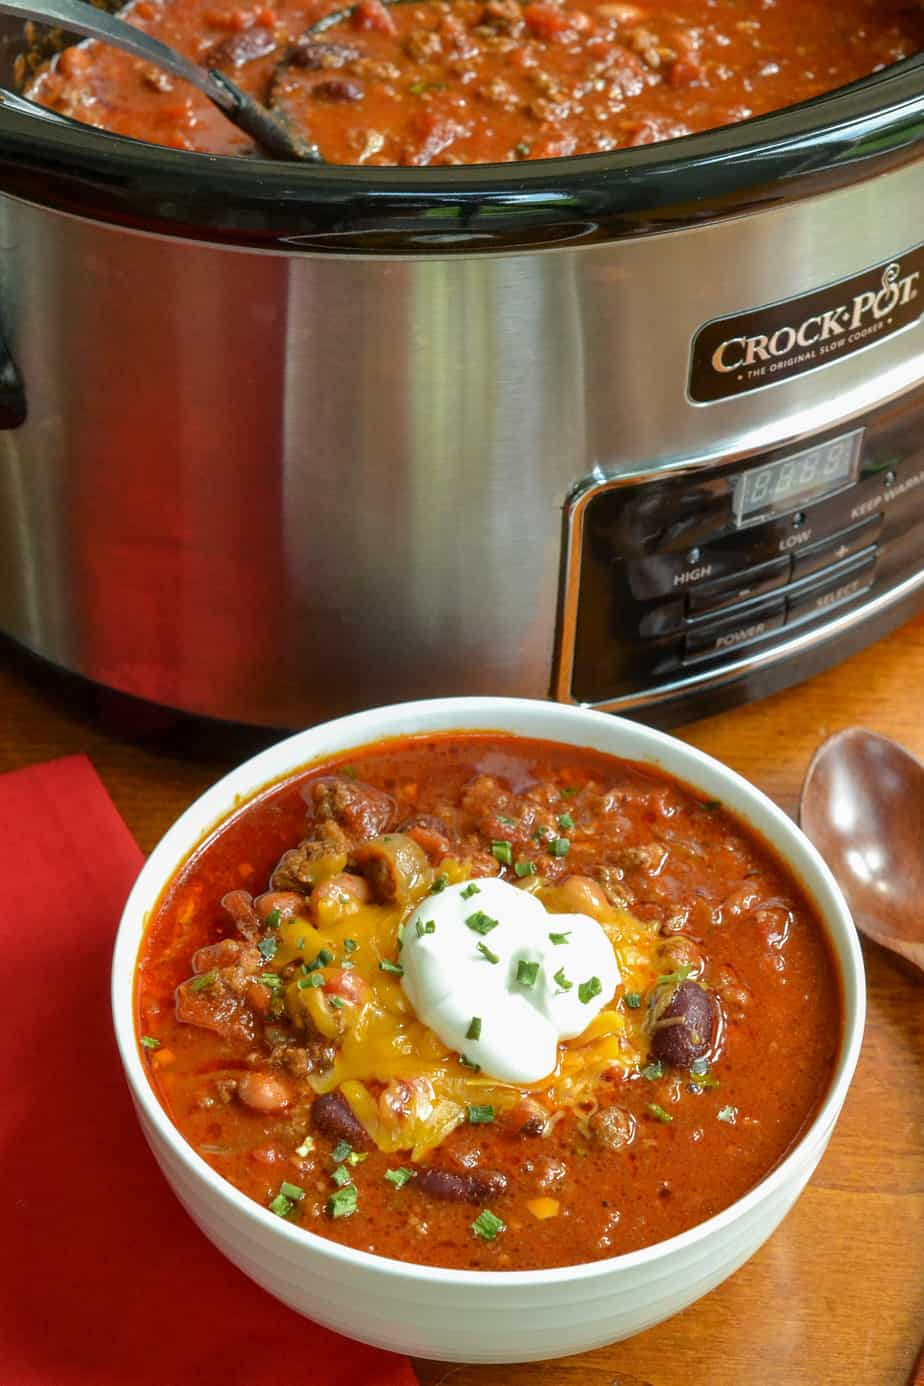 A crock and a bowl full of chili